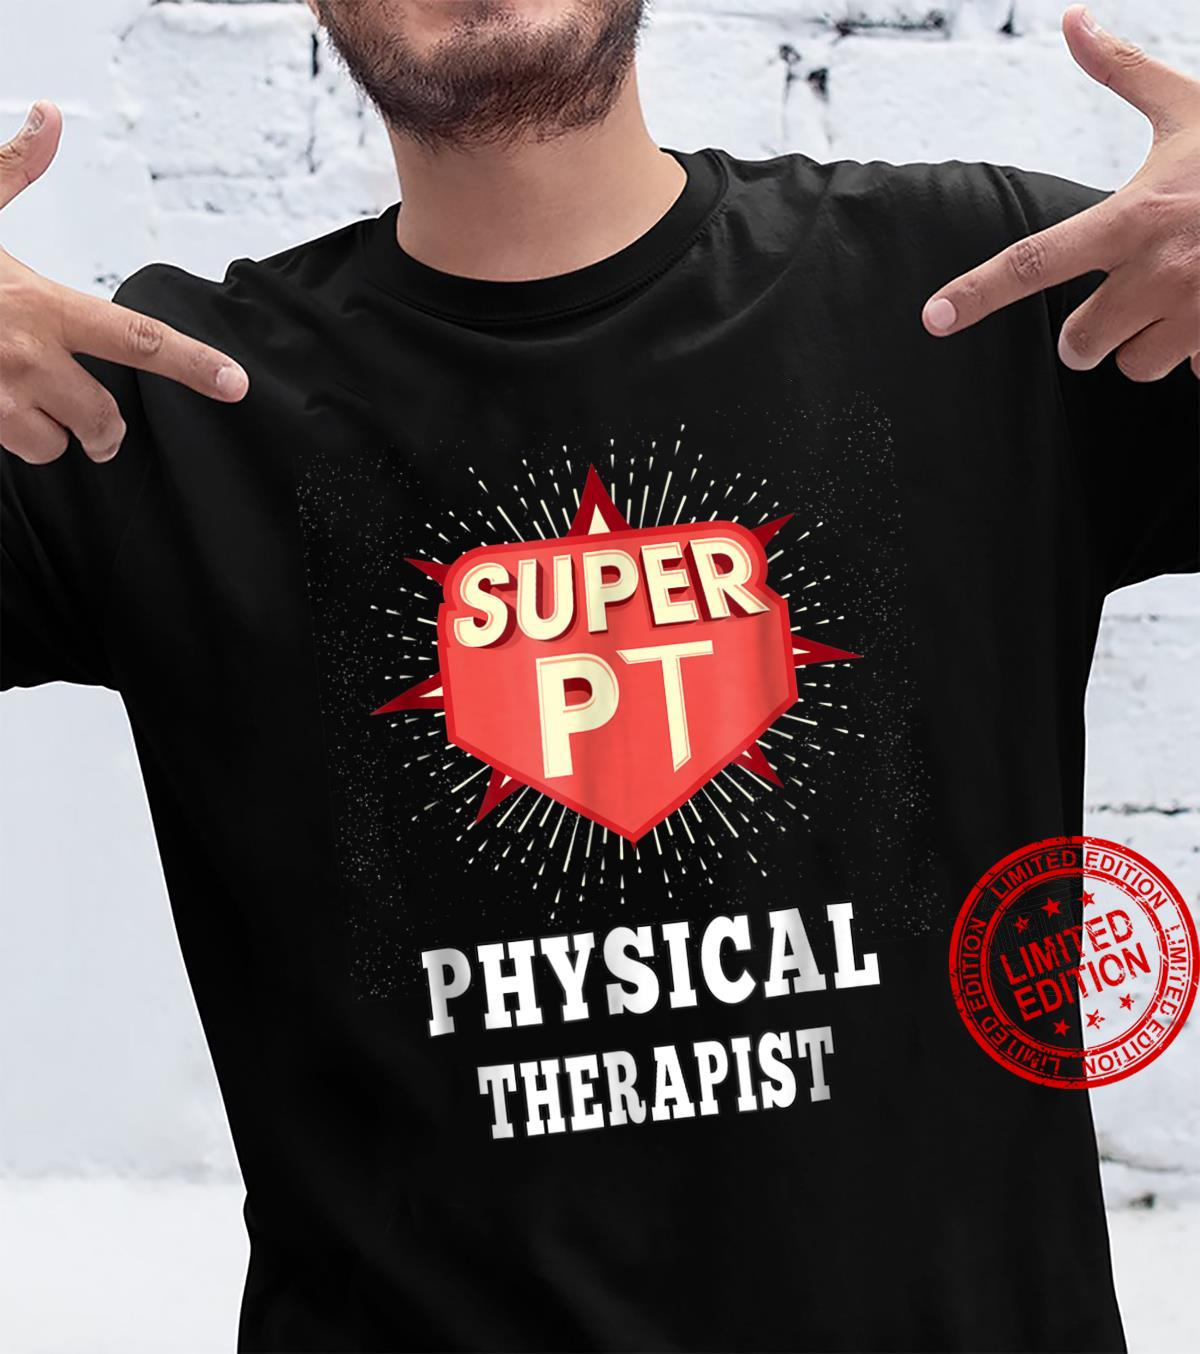 Super Physical Therapist, Medical Therapy, Shirt, Lt Shirt